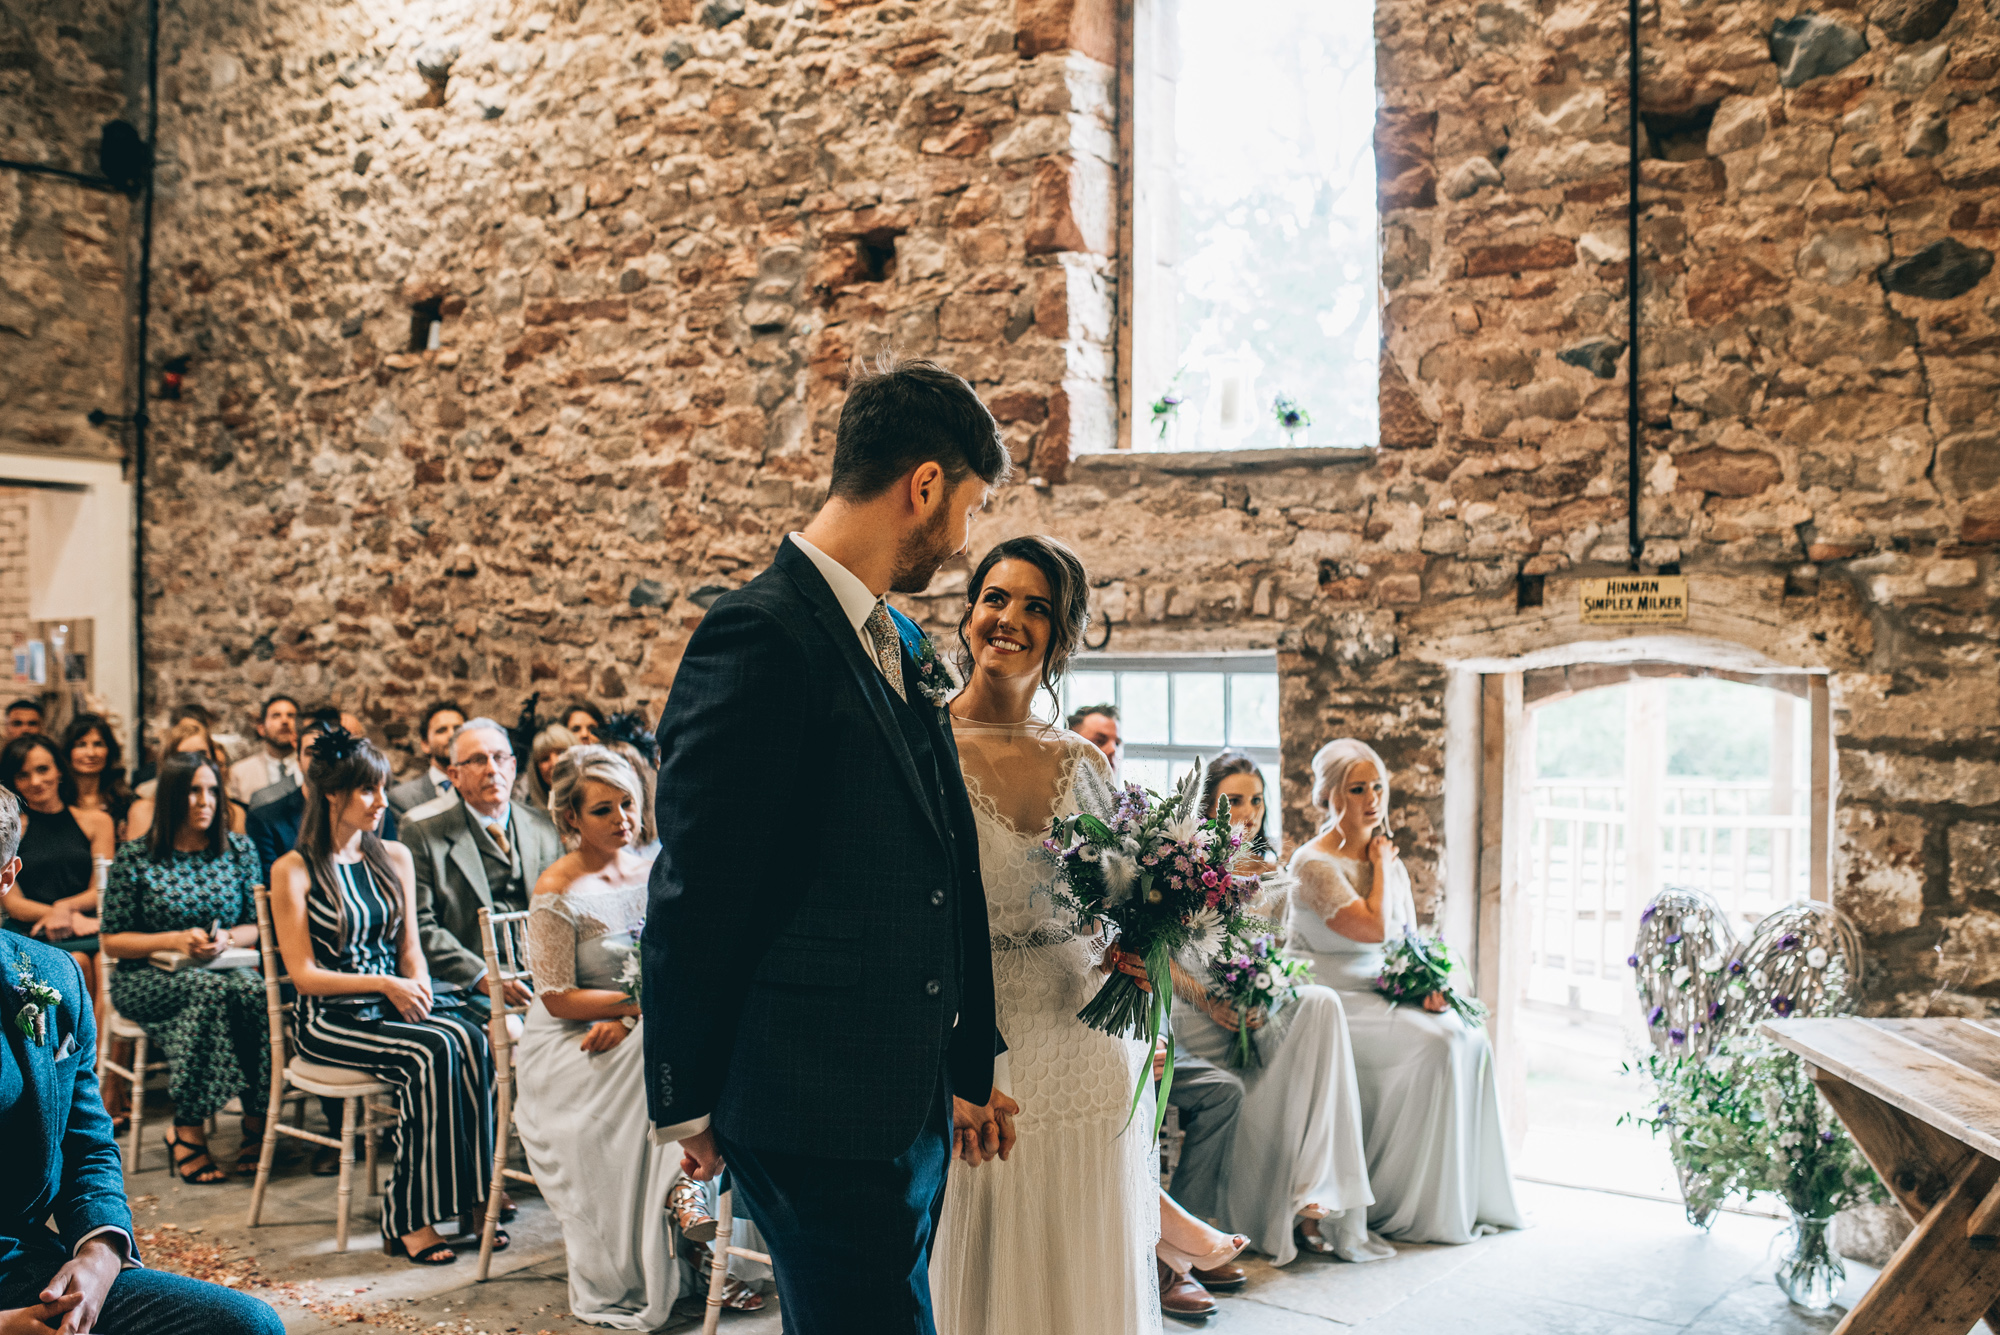 Kate-Beaumont-Sheffield-Lucy-Bohemian-Lace-Dress-Barn-Wedding-Cumbria-9.jpg